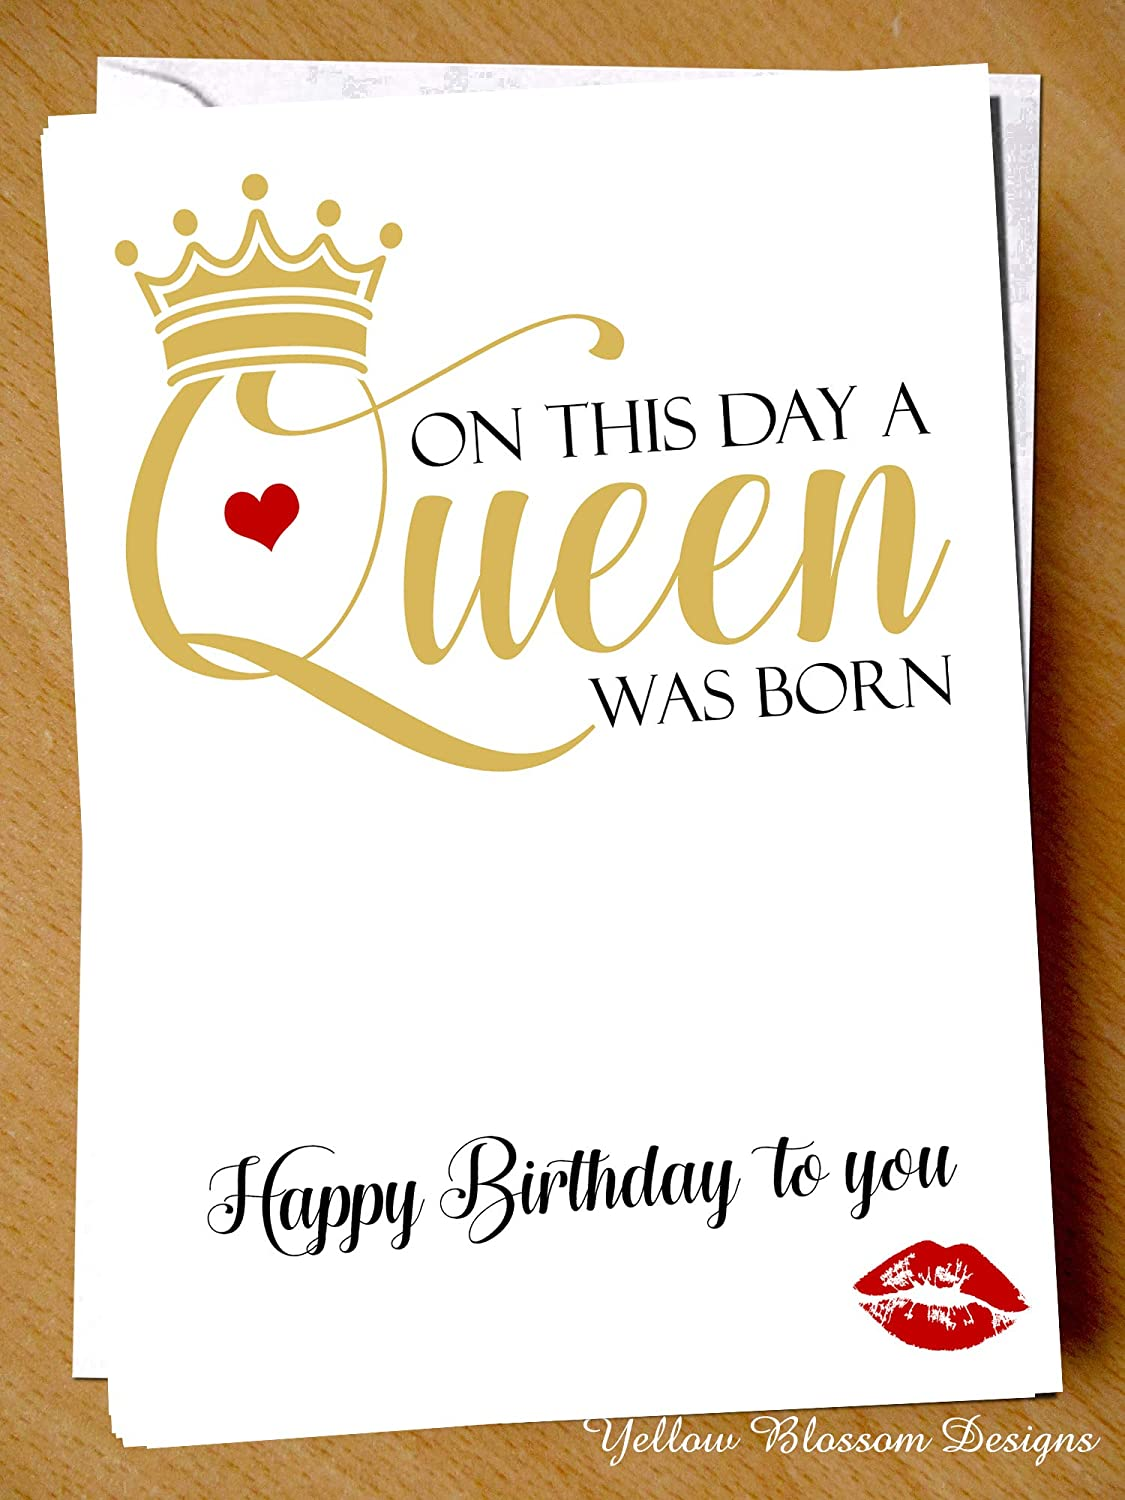 Happy Birthday Greetings Card On This Day A Queen Was Born Happy